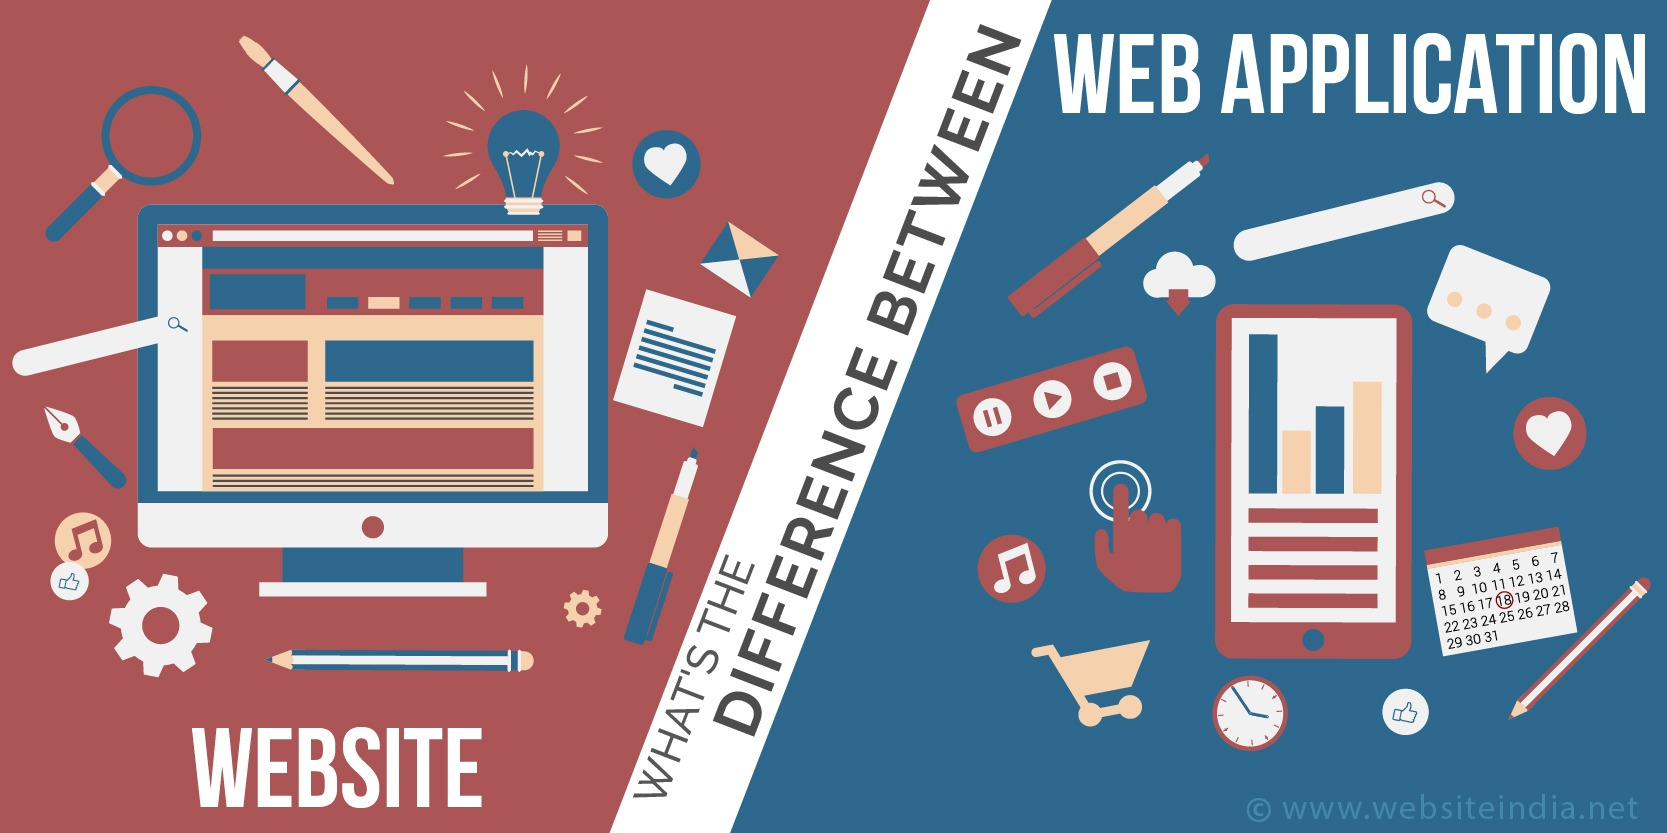 Difference between Website & Web Application